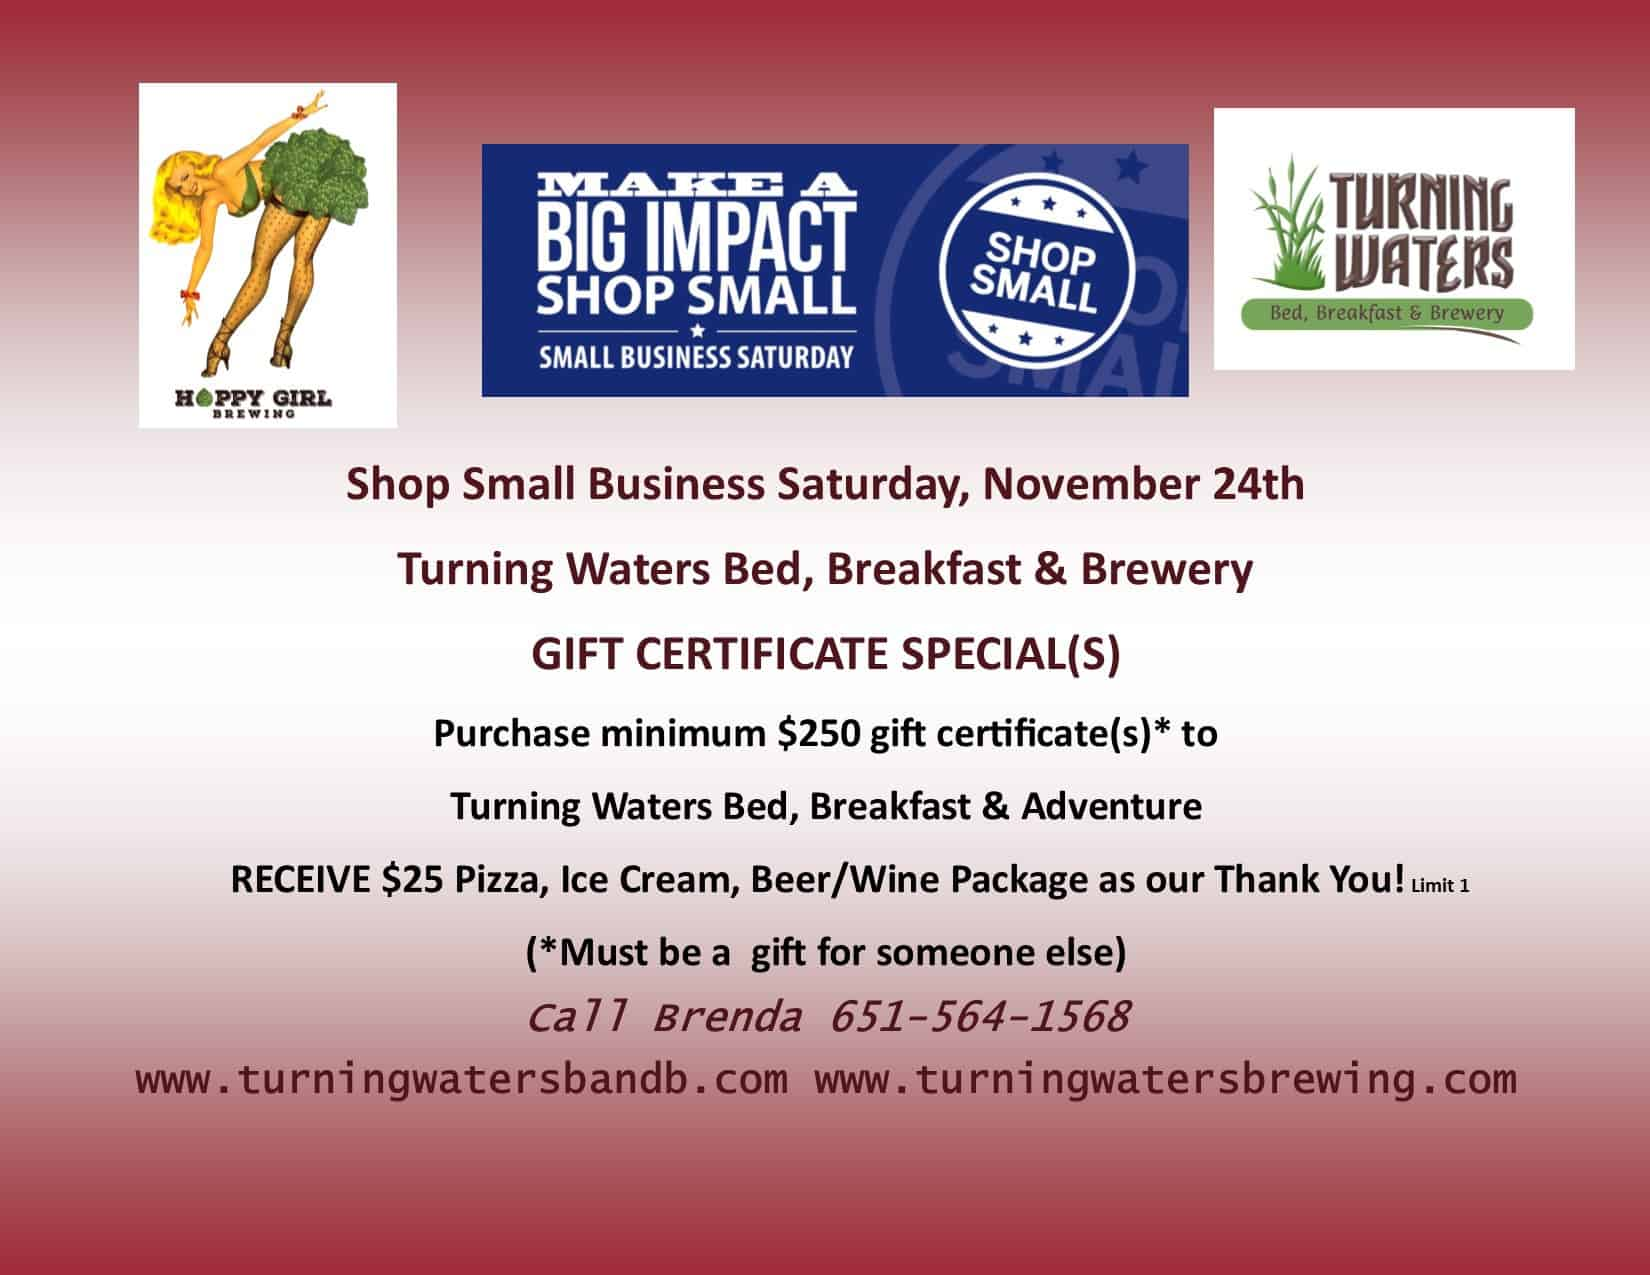 Turning Waters Small Business Saturday Certificate Specials